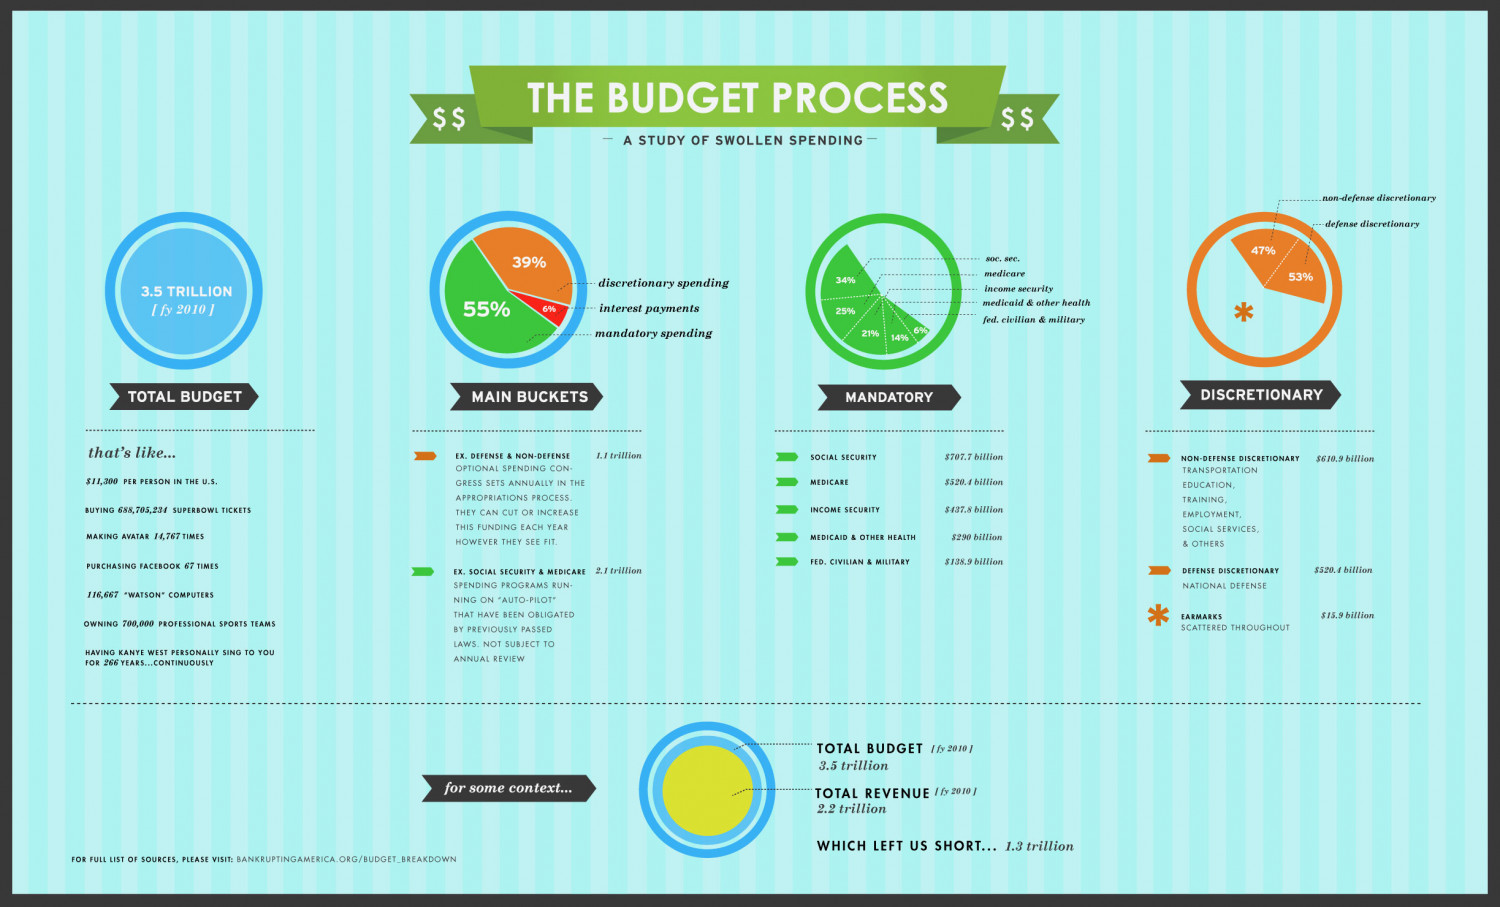 The Budget Process: A Study of Swollen Spending Infographic